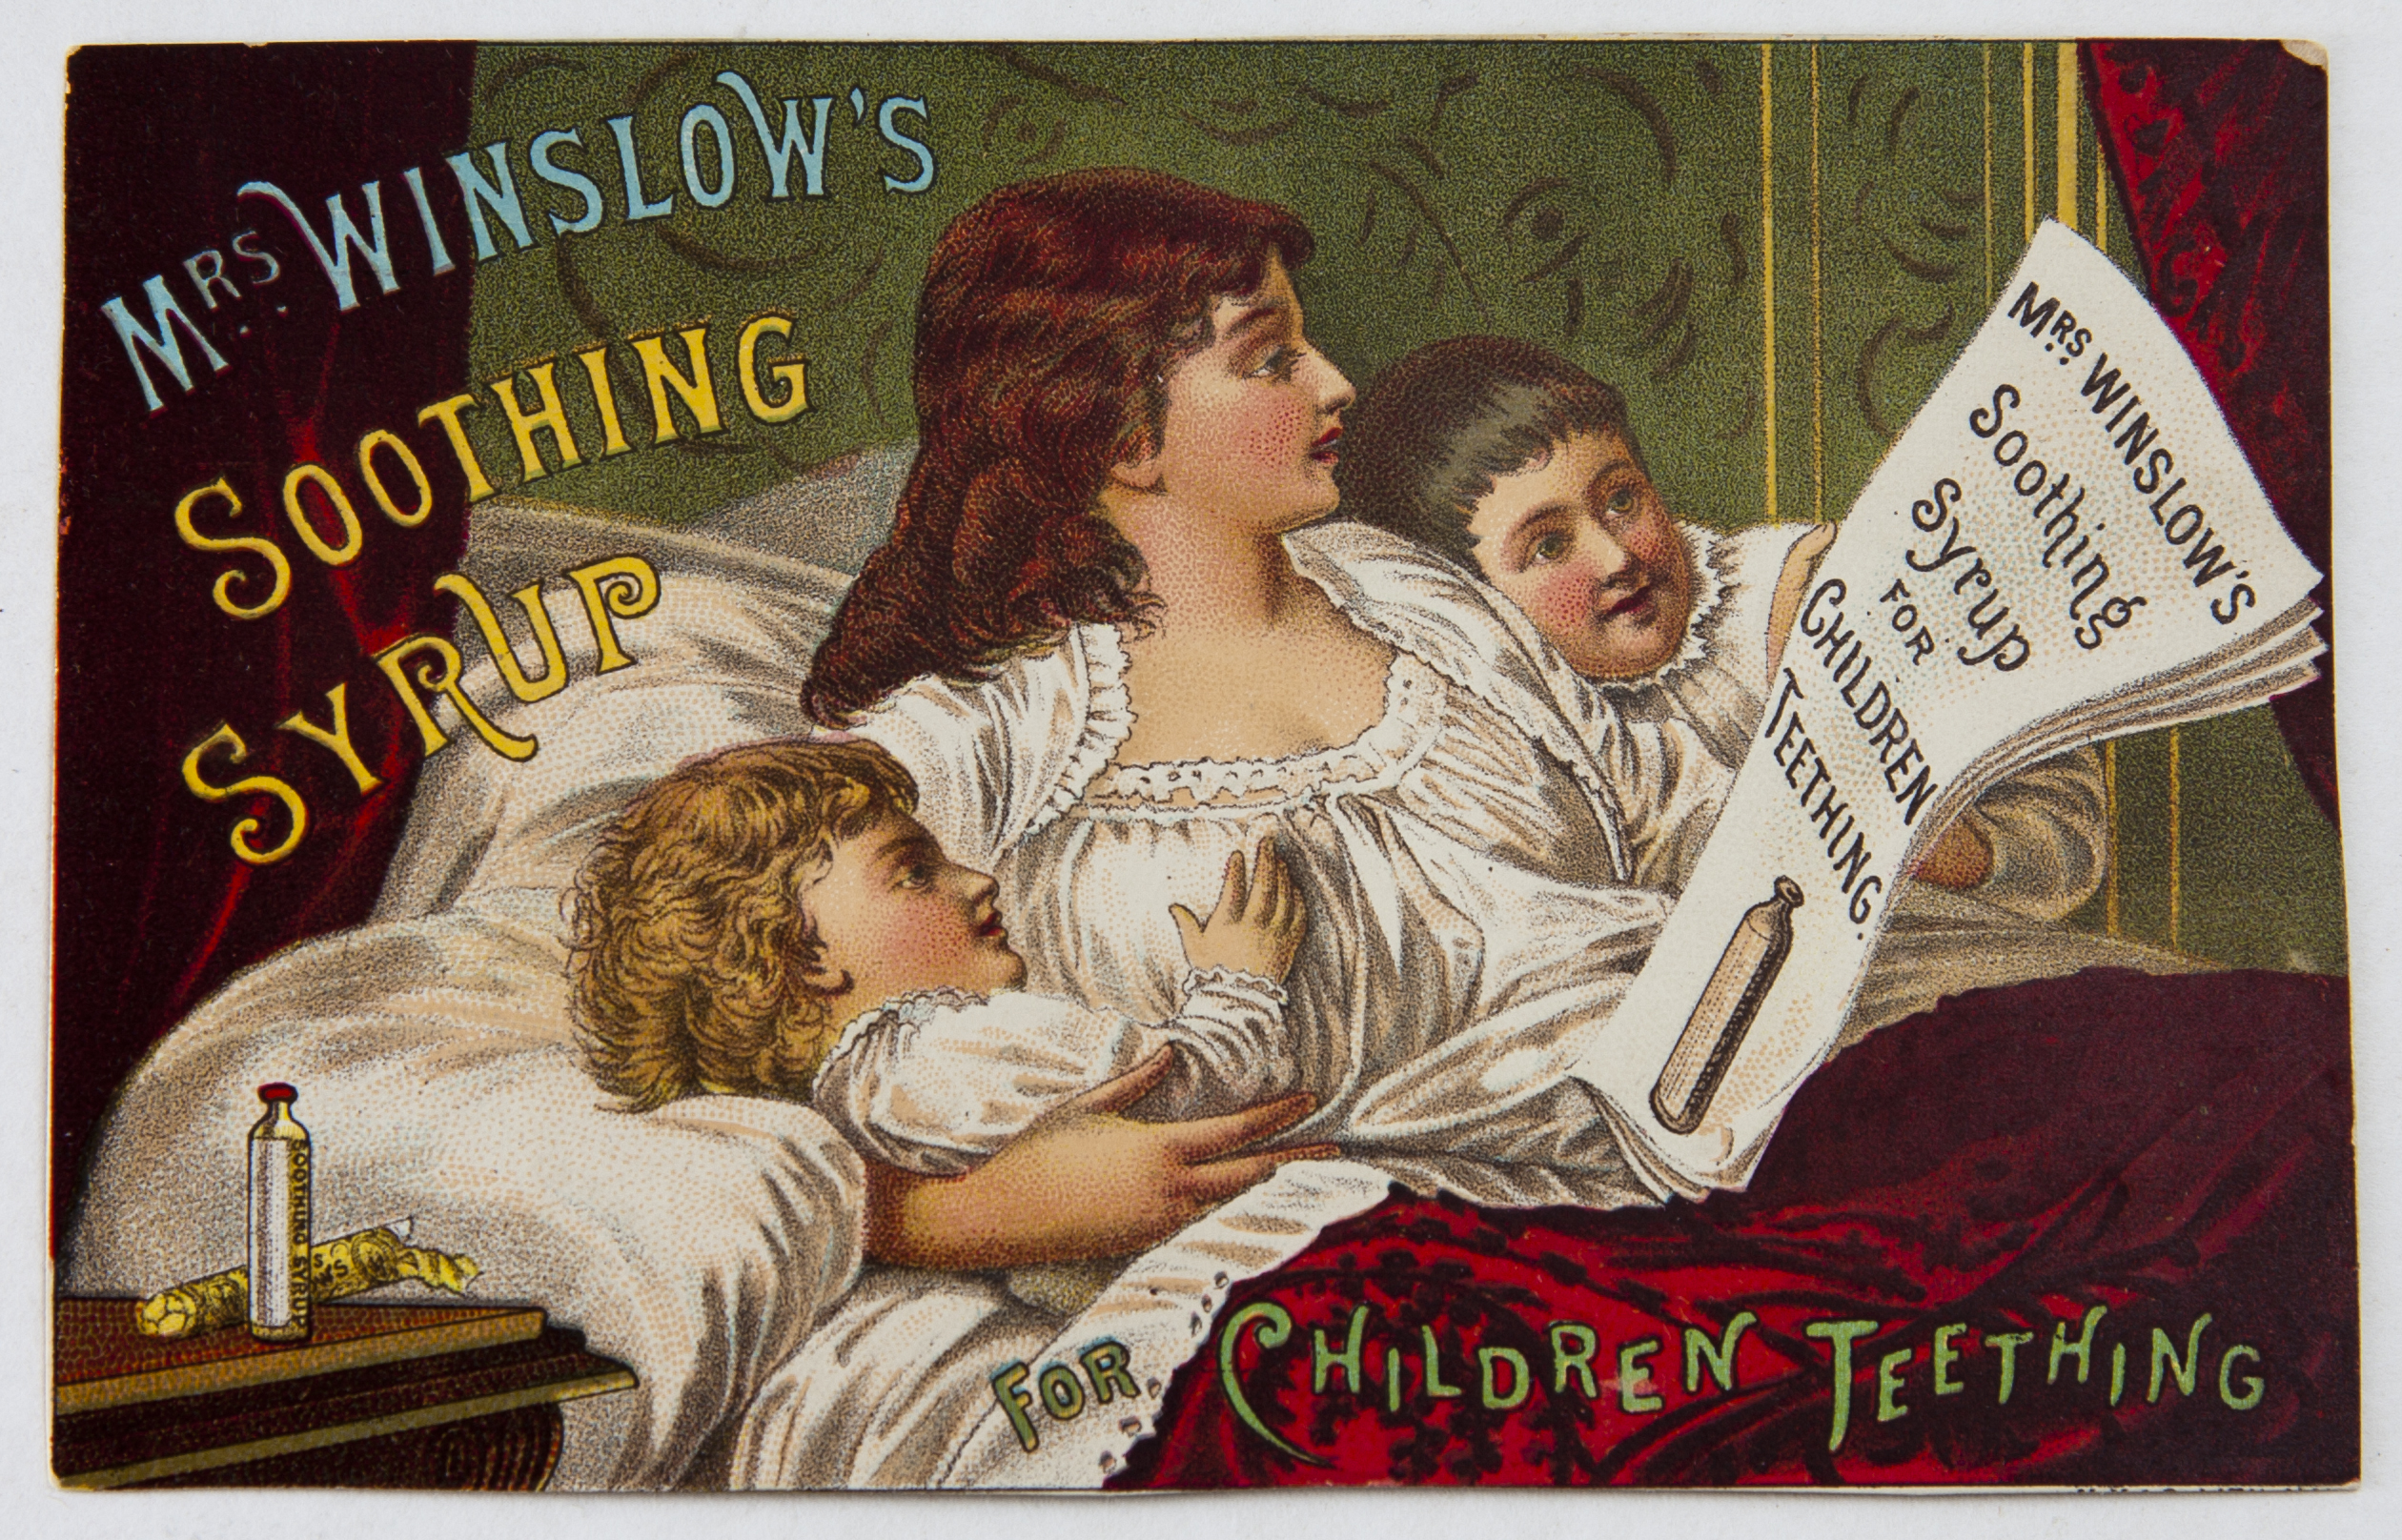 Mrs Winslow color lithograph